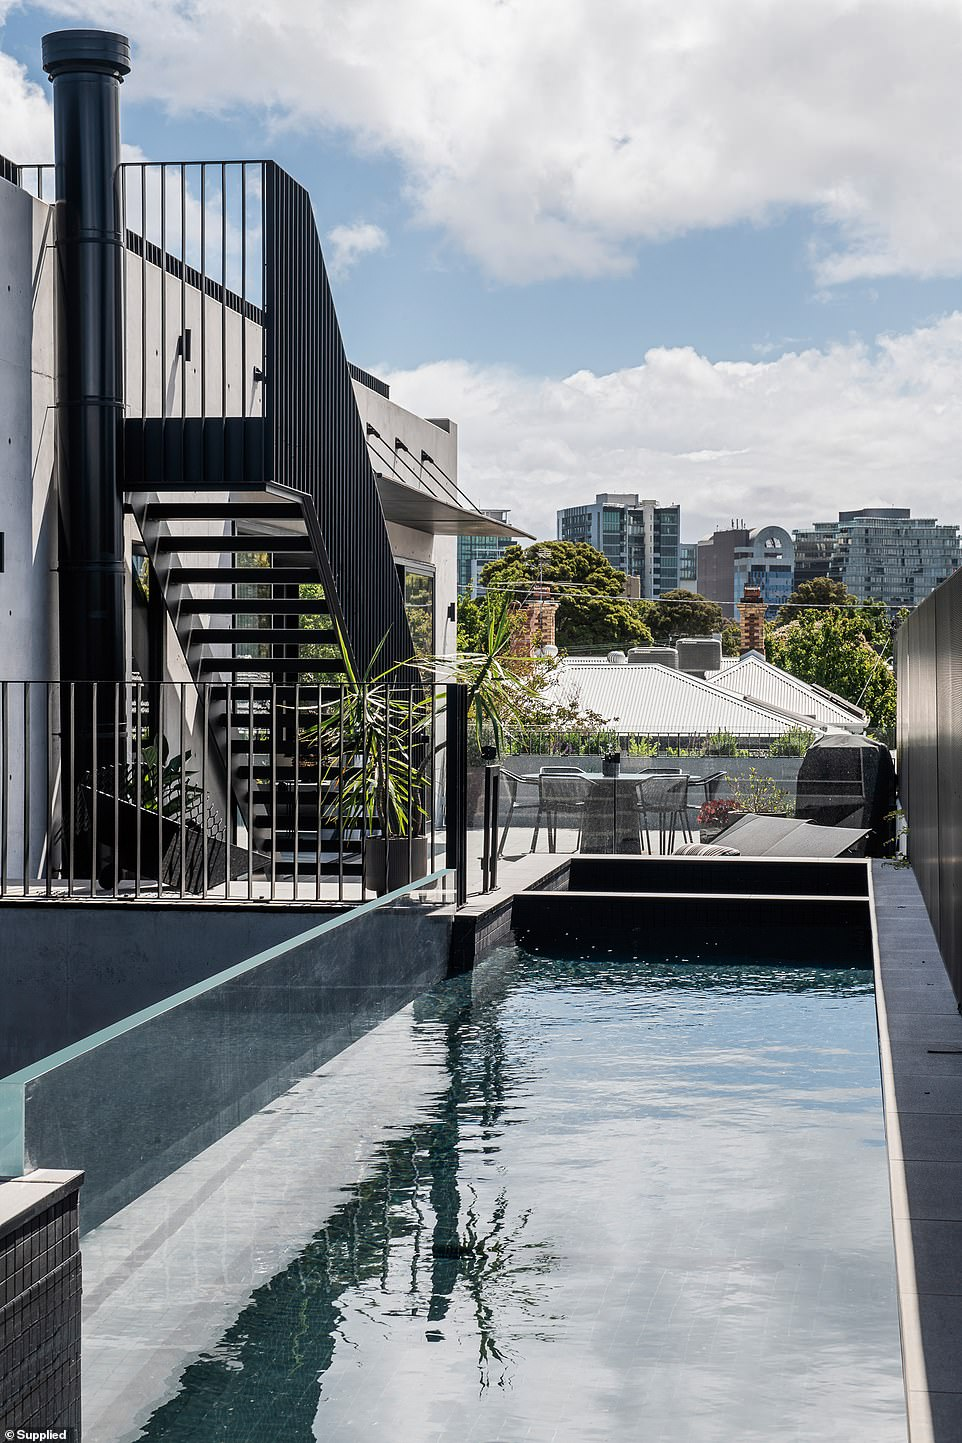 The standout feature is undoubtedly the suspended swimming pool that spans the space between two outdoor terraces